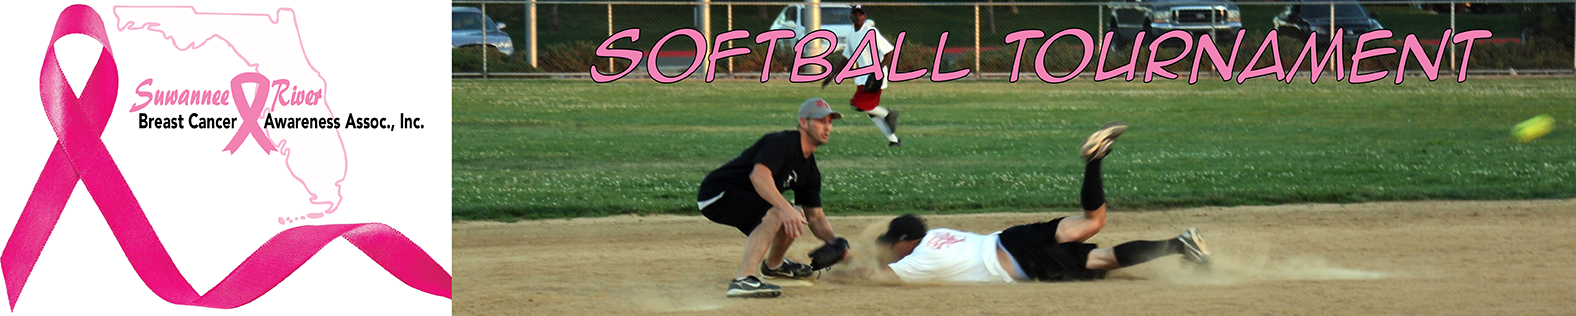 Softball Tournament Photos Header